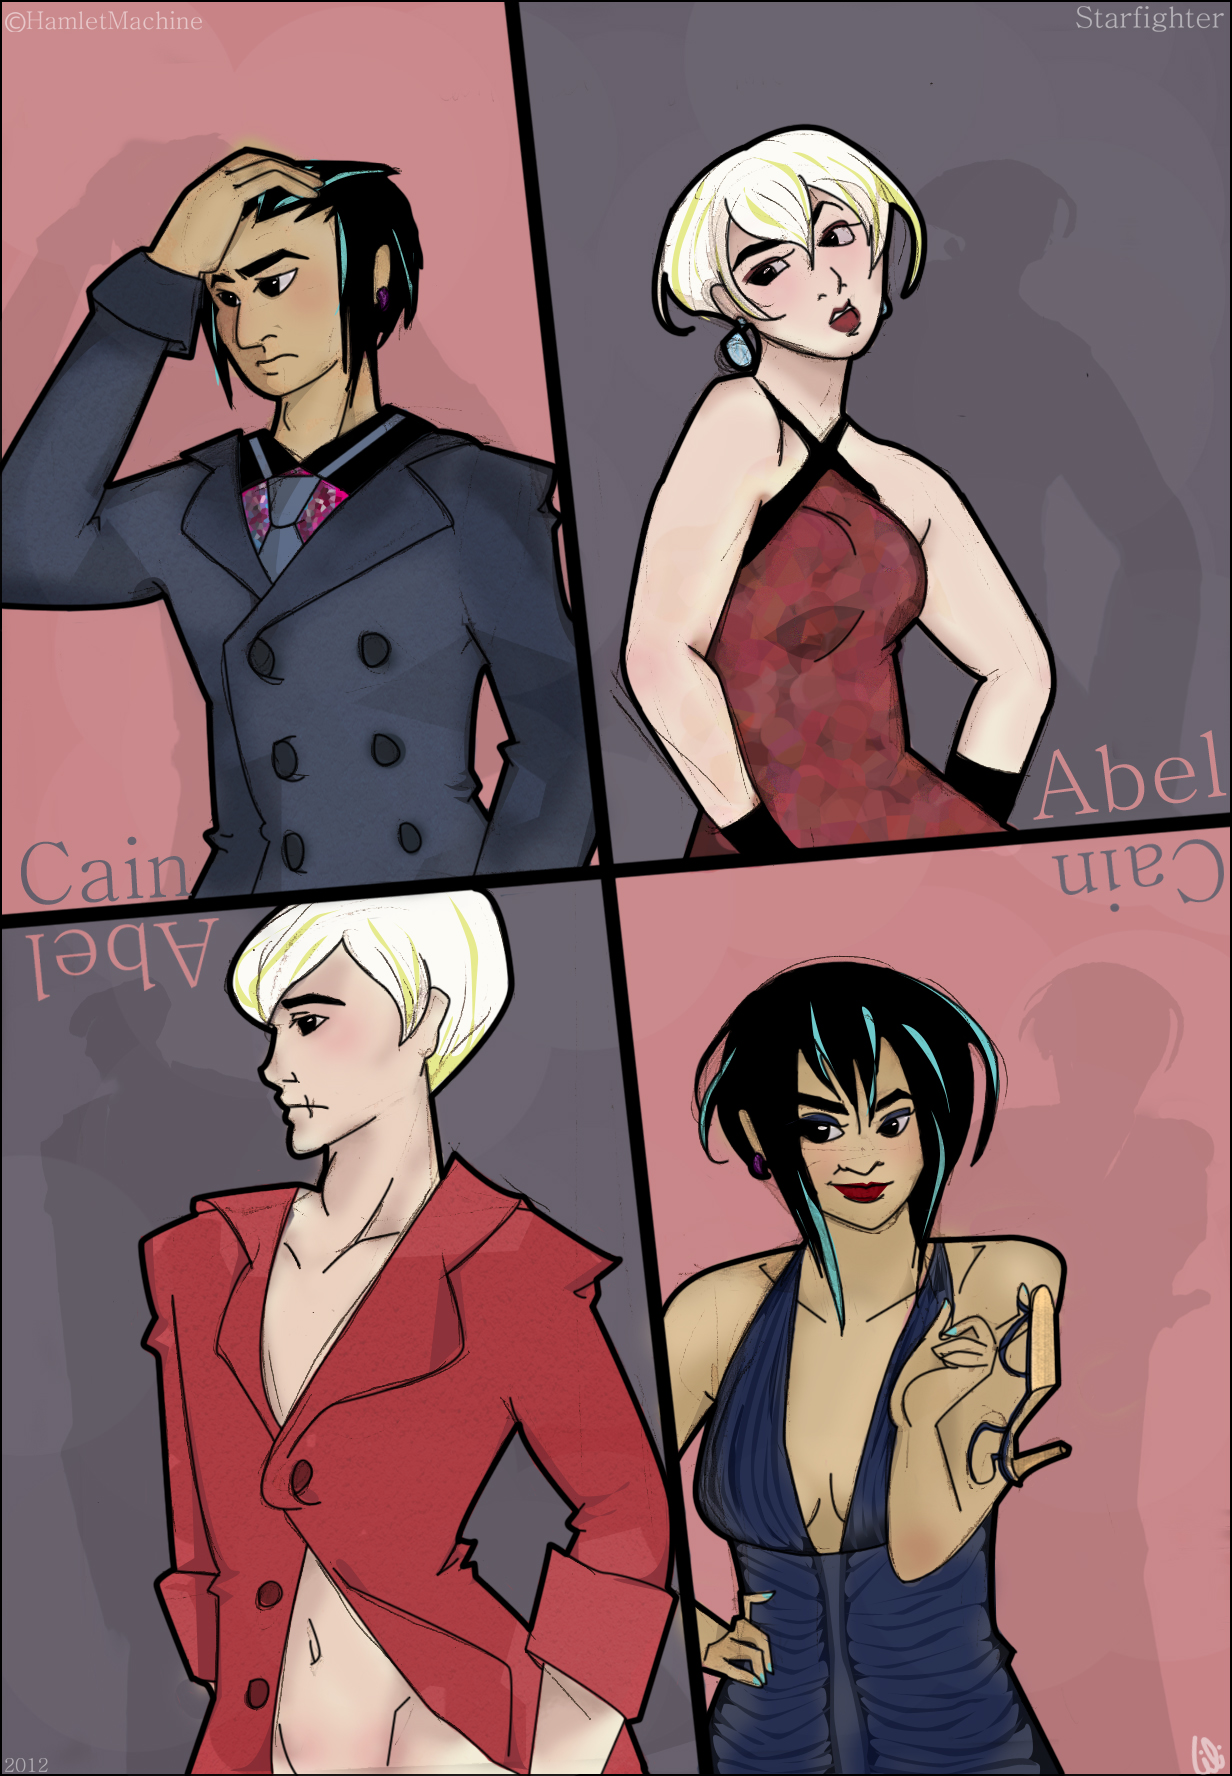 Starfighter - Genderbending Gentlemen by furya21